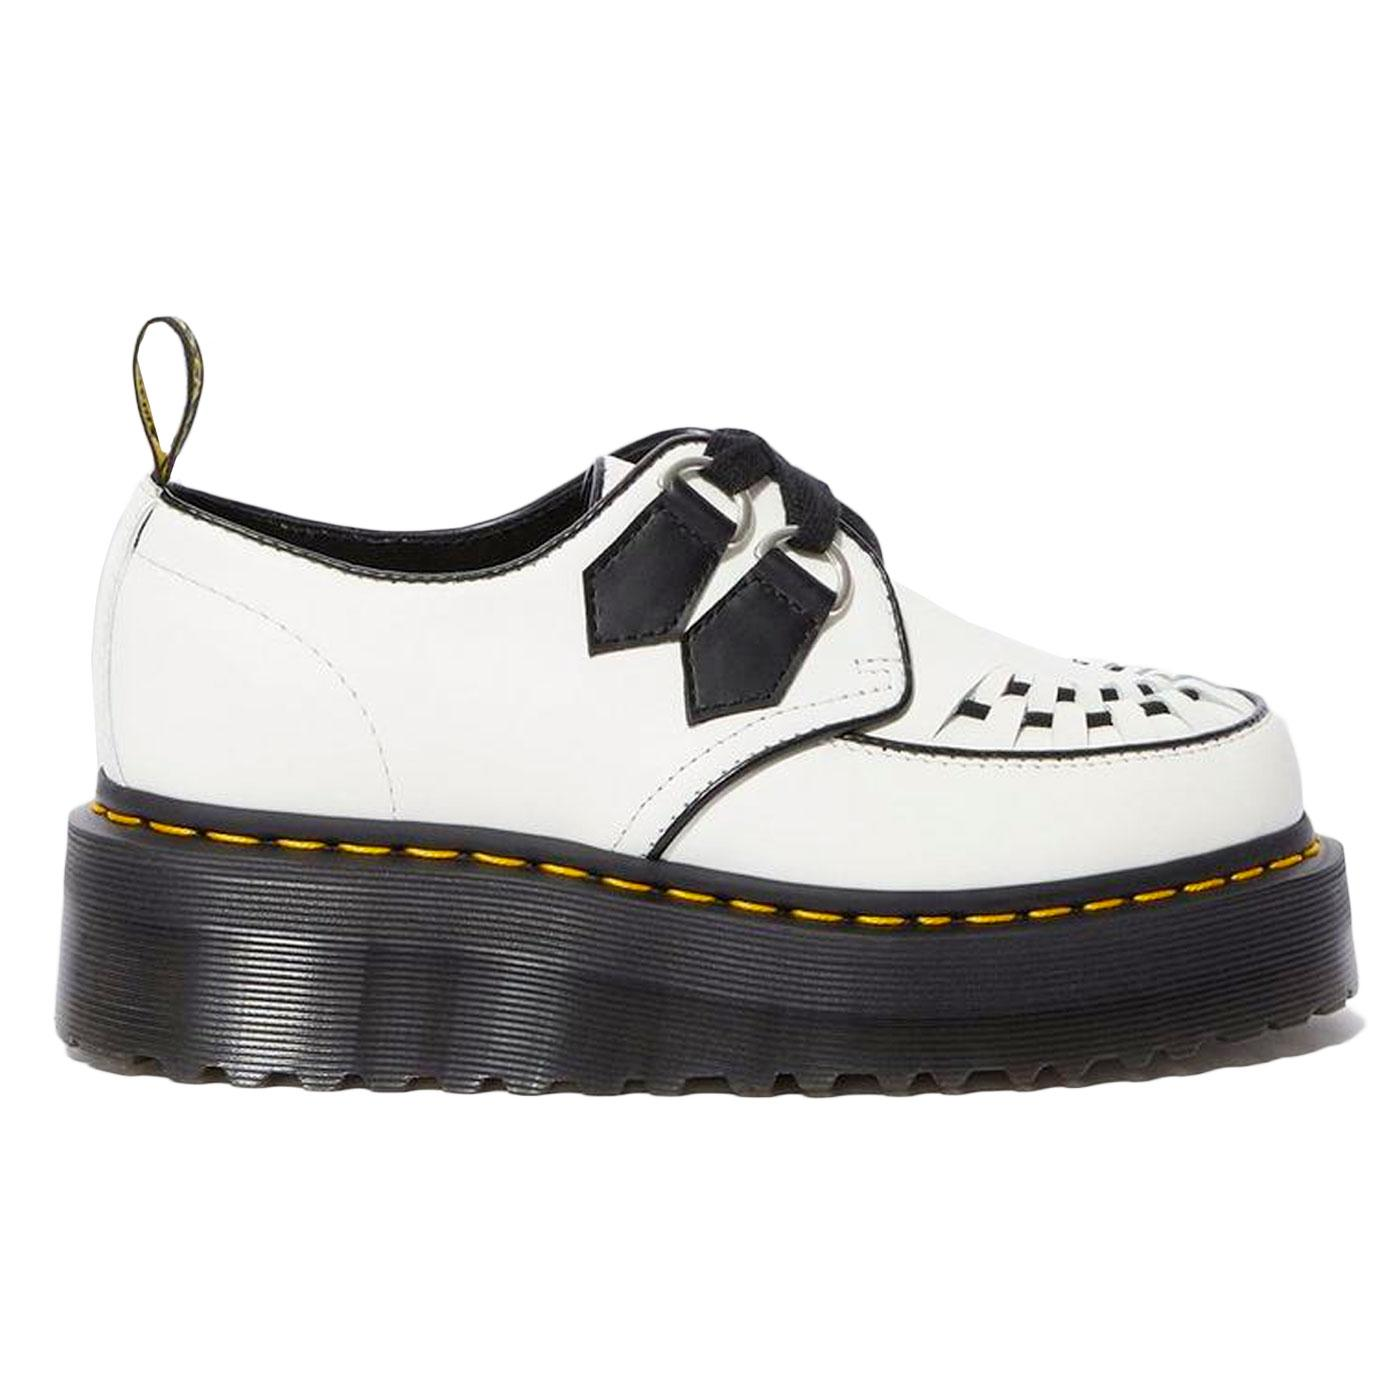 DR MARTENS Sidney Smooth Leather